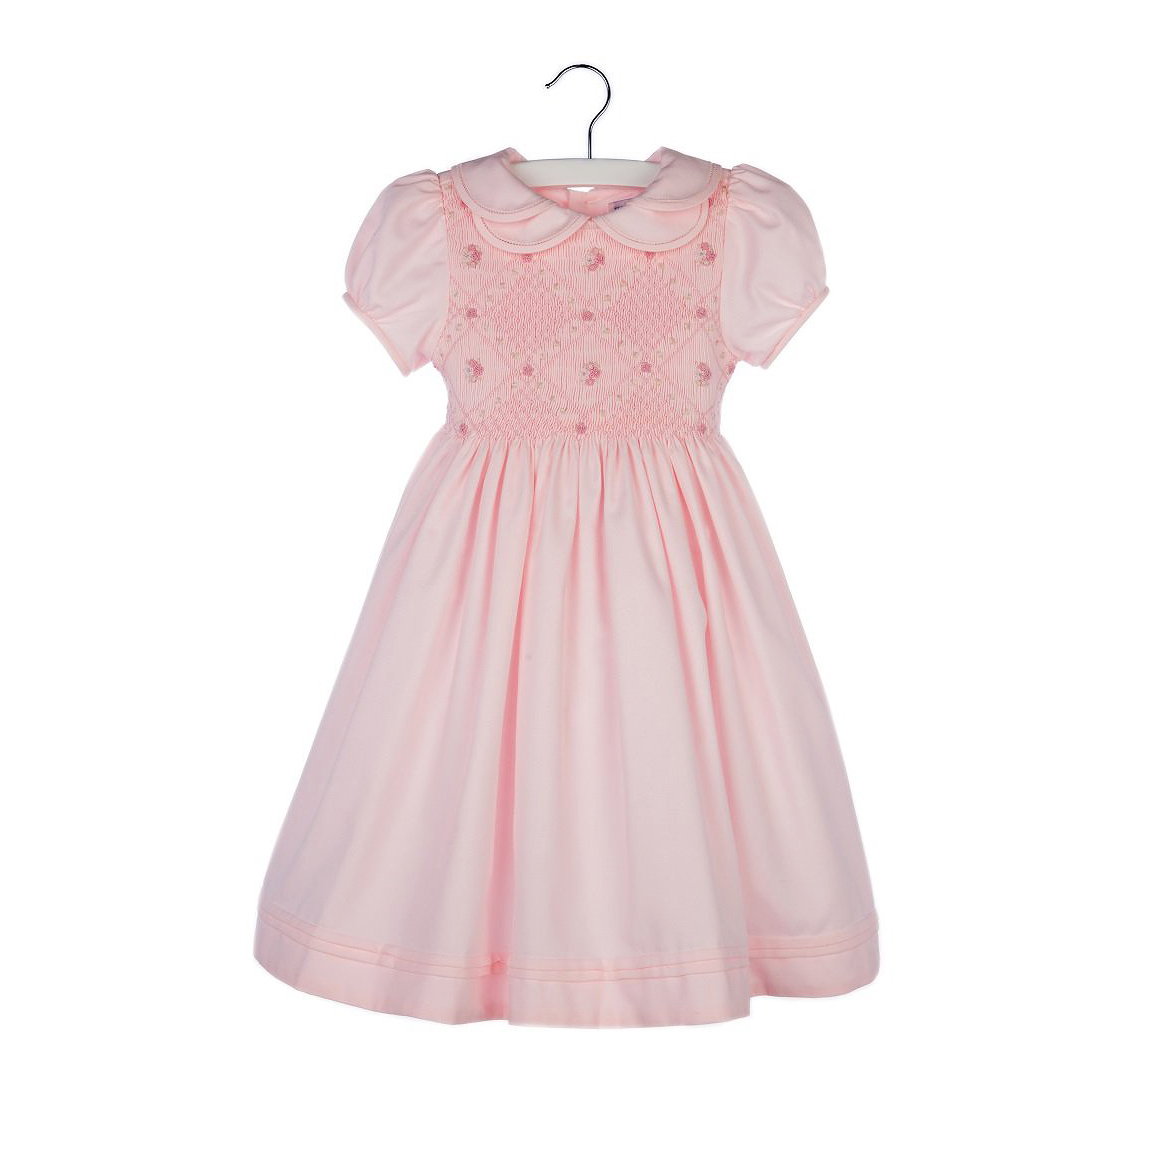 summer flower girl outfit pink collared dress